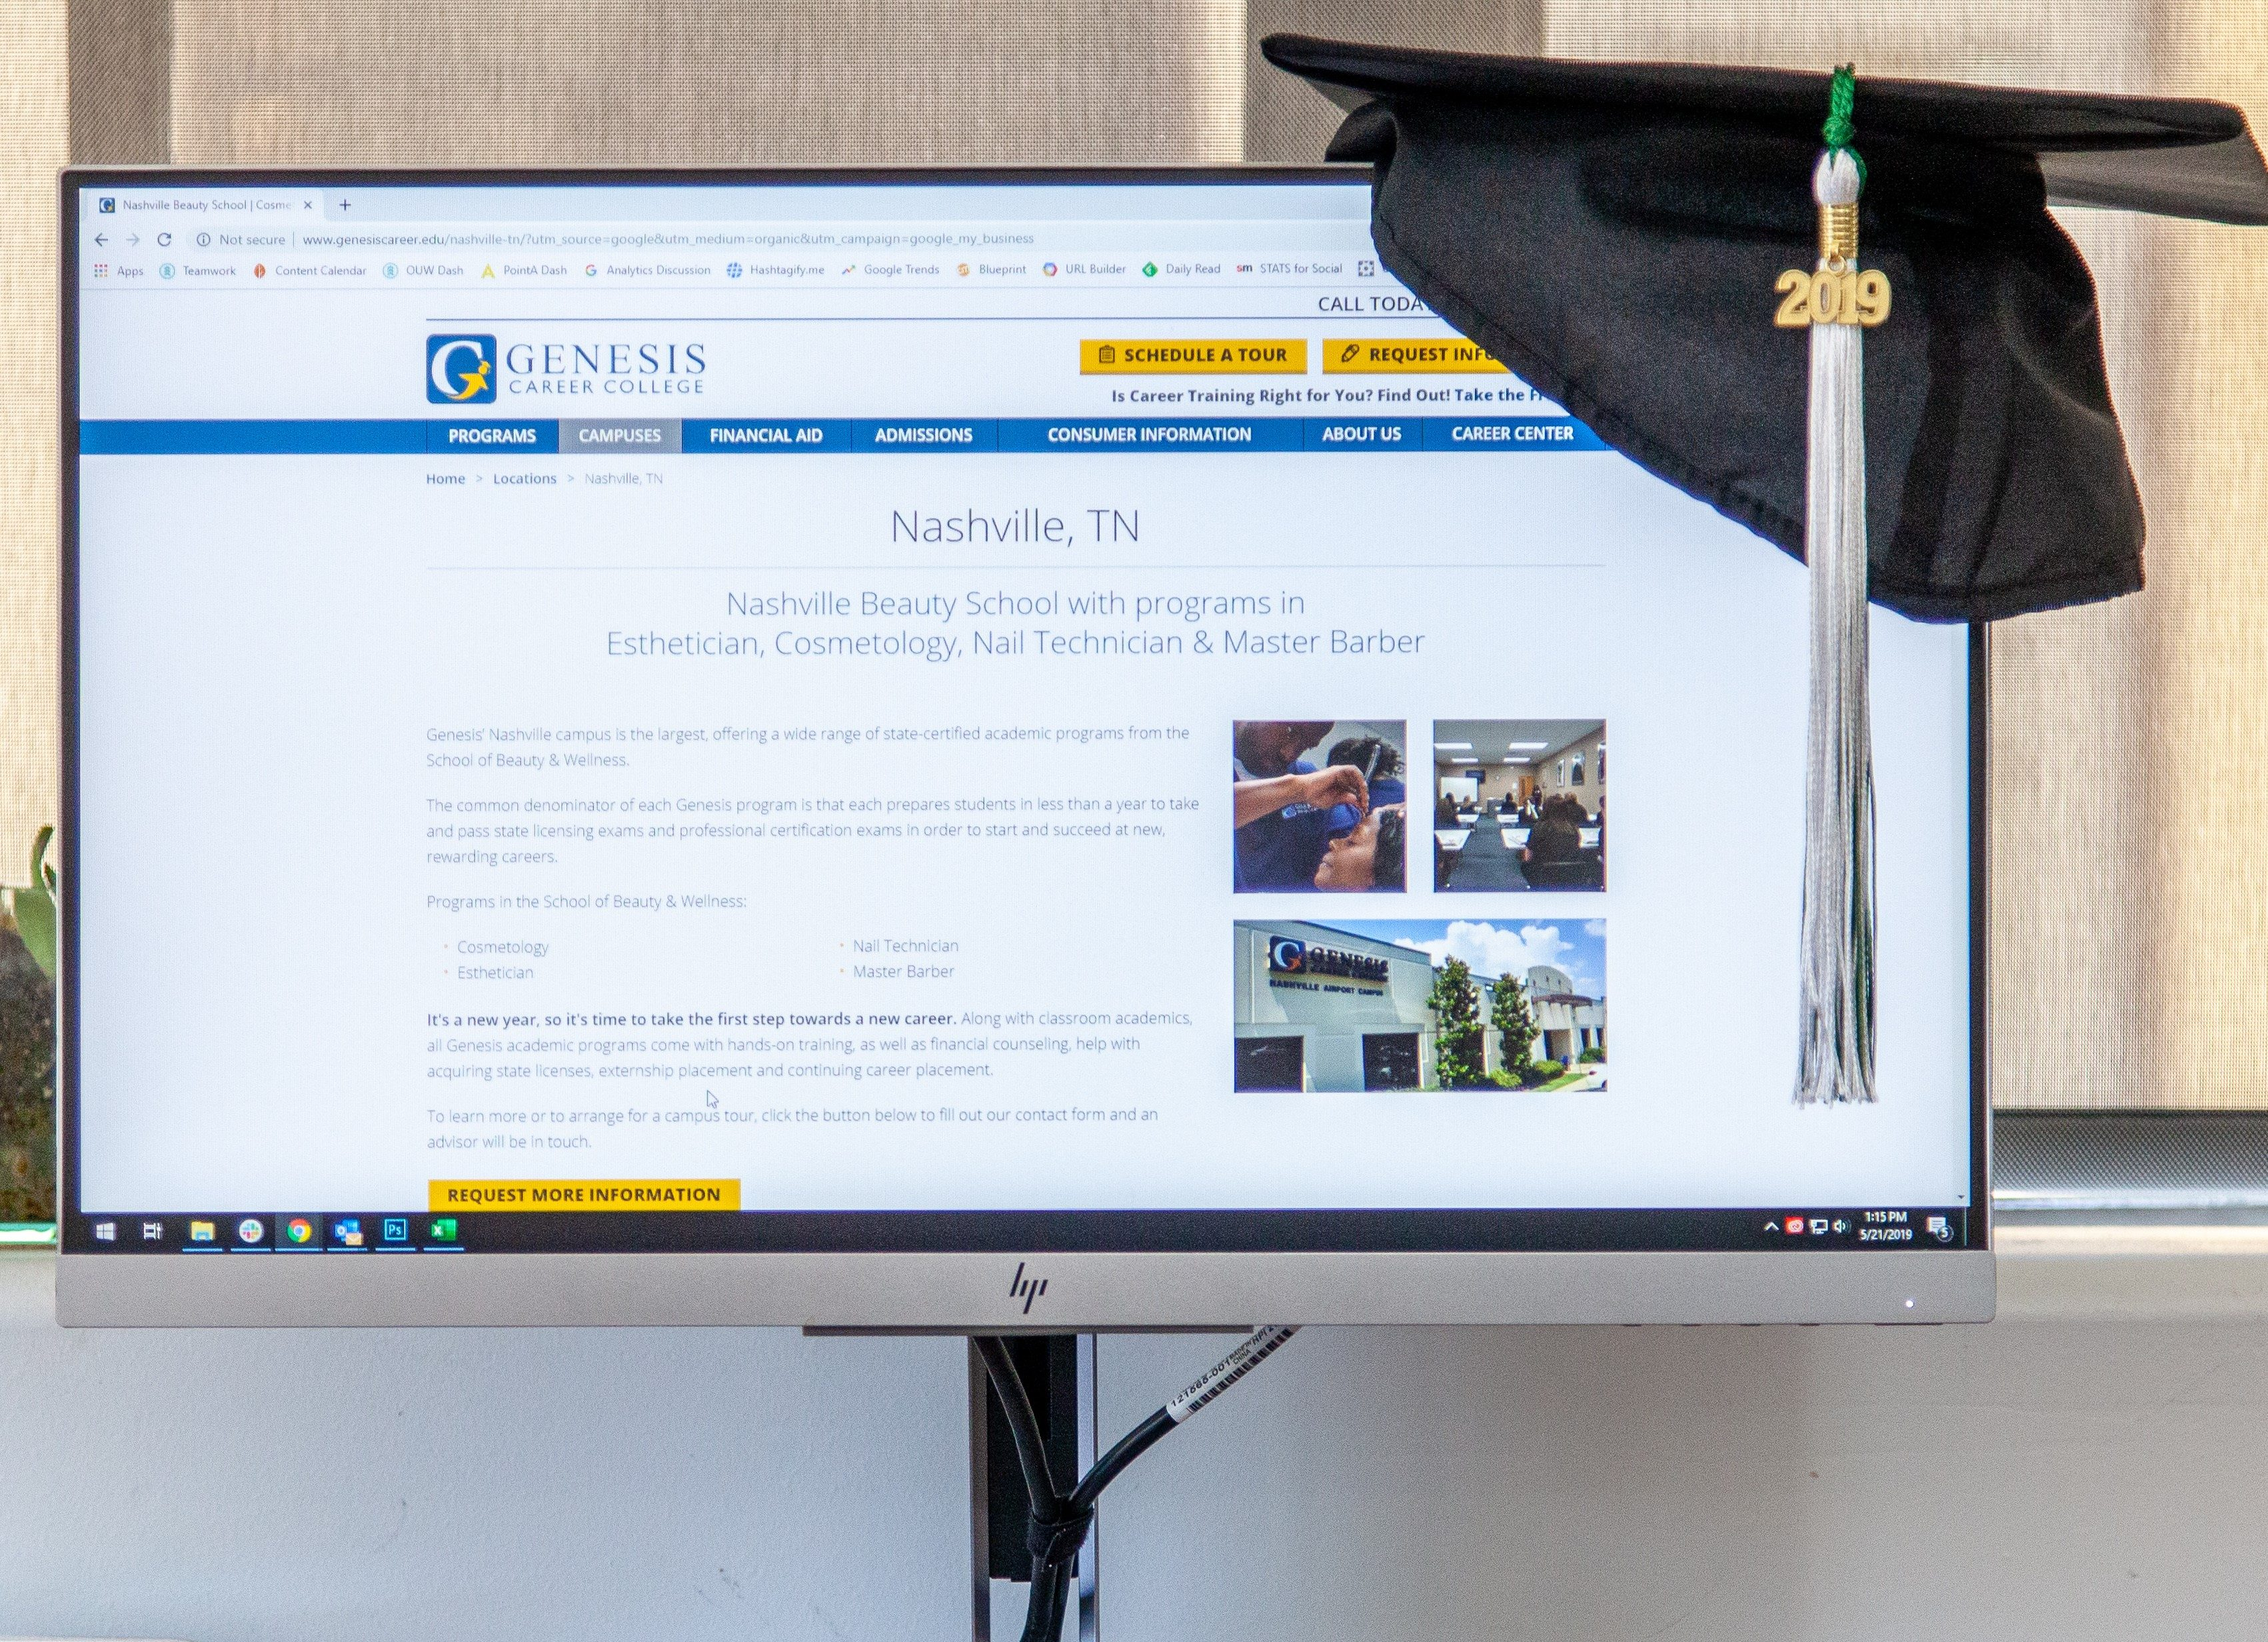 Genesis Career College website on a computer screen with a graduation hat on the corner